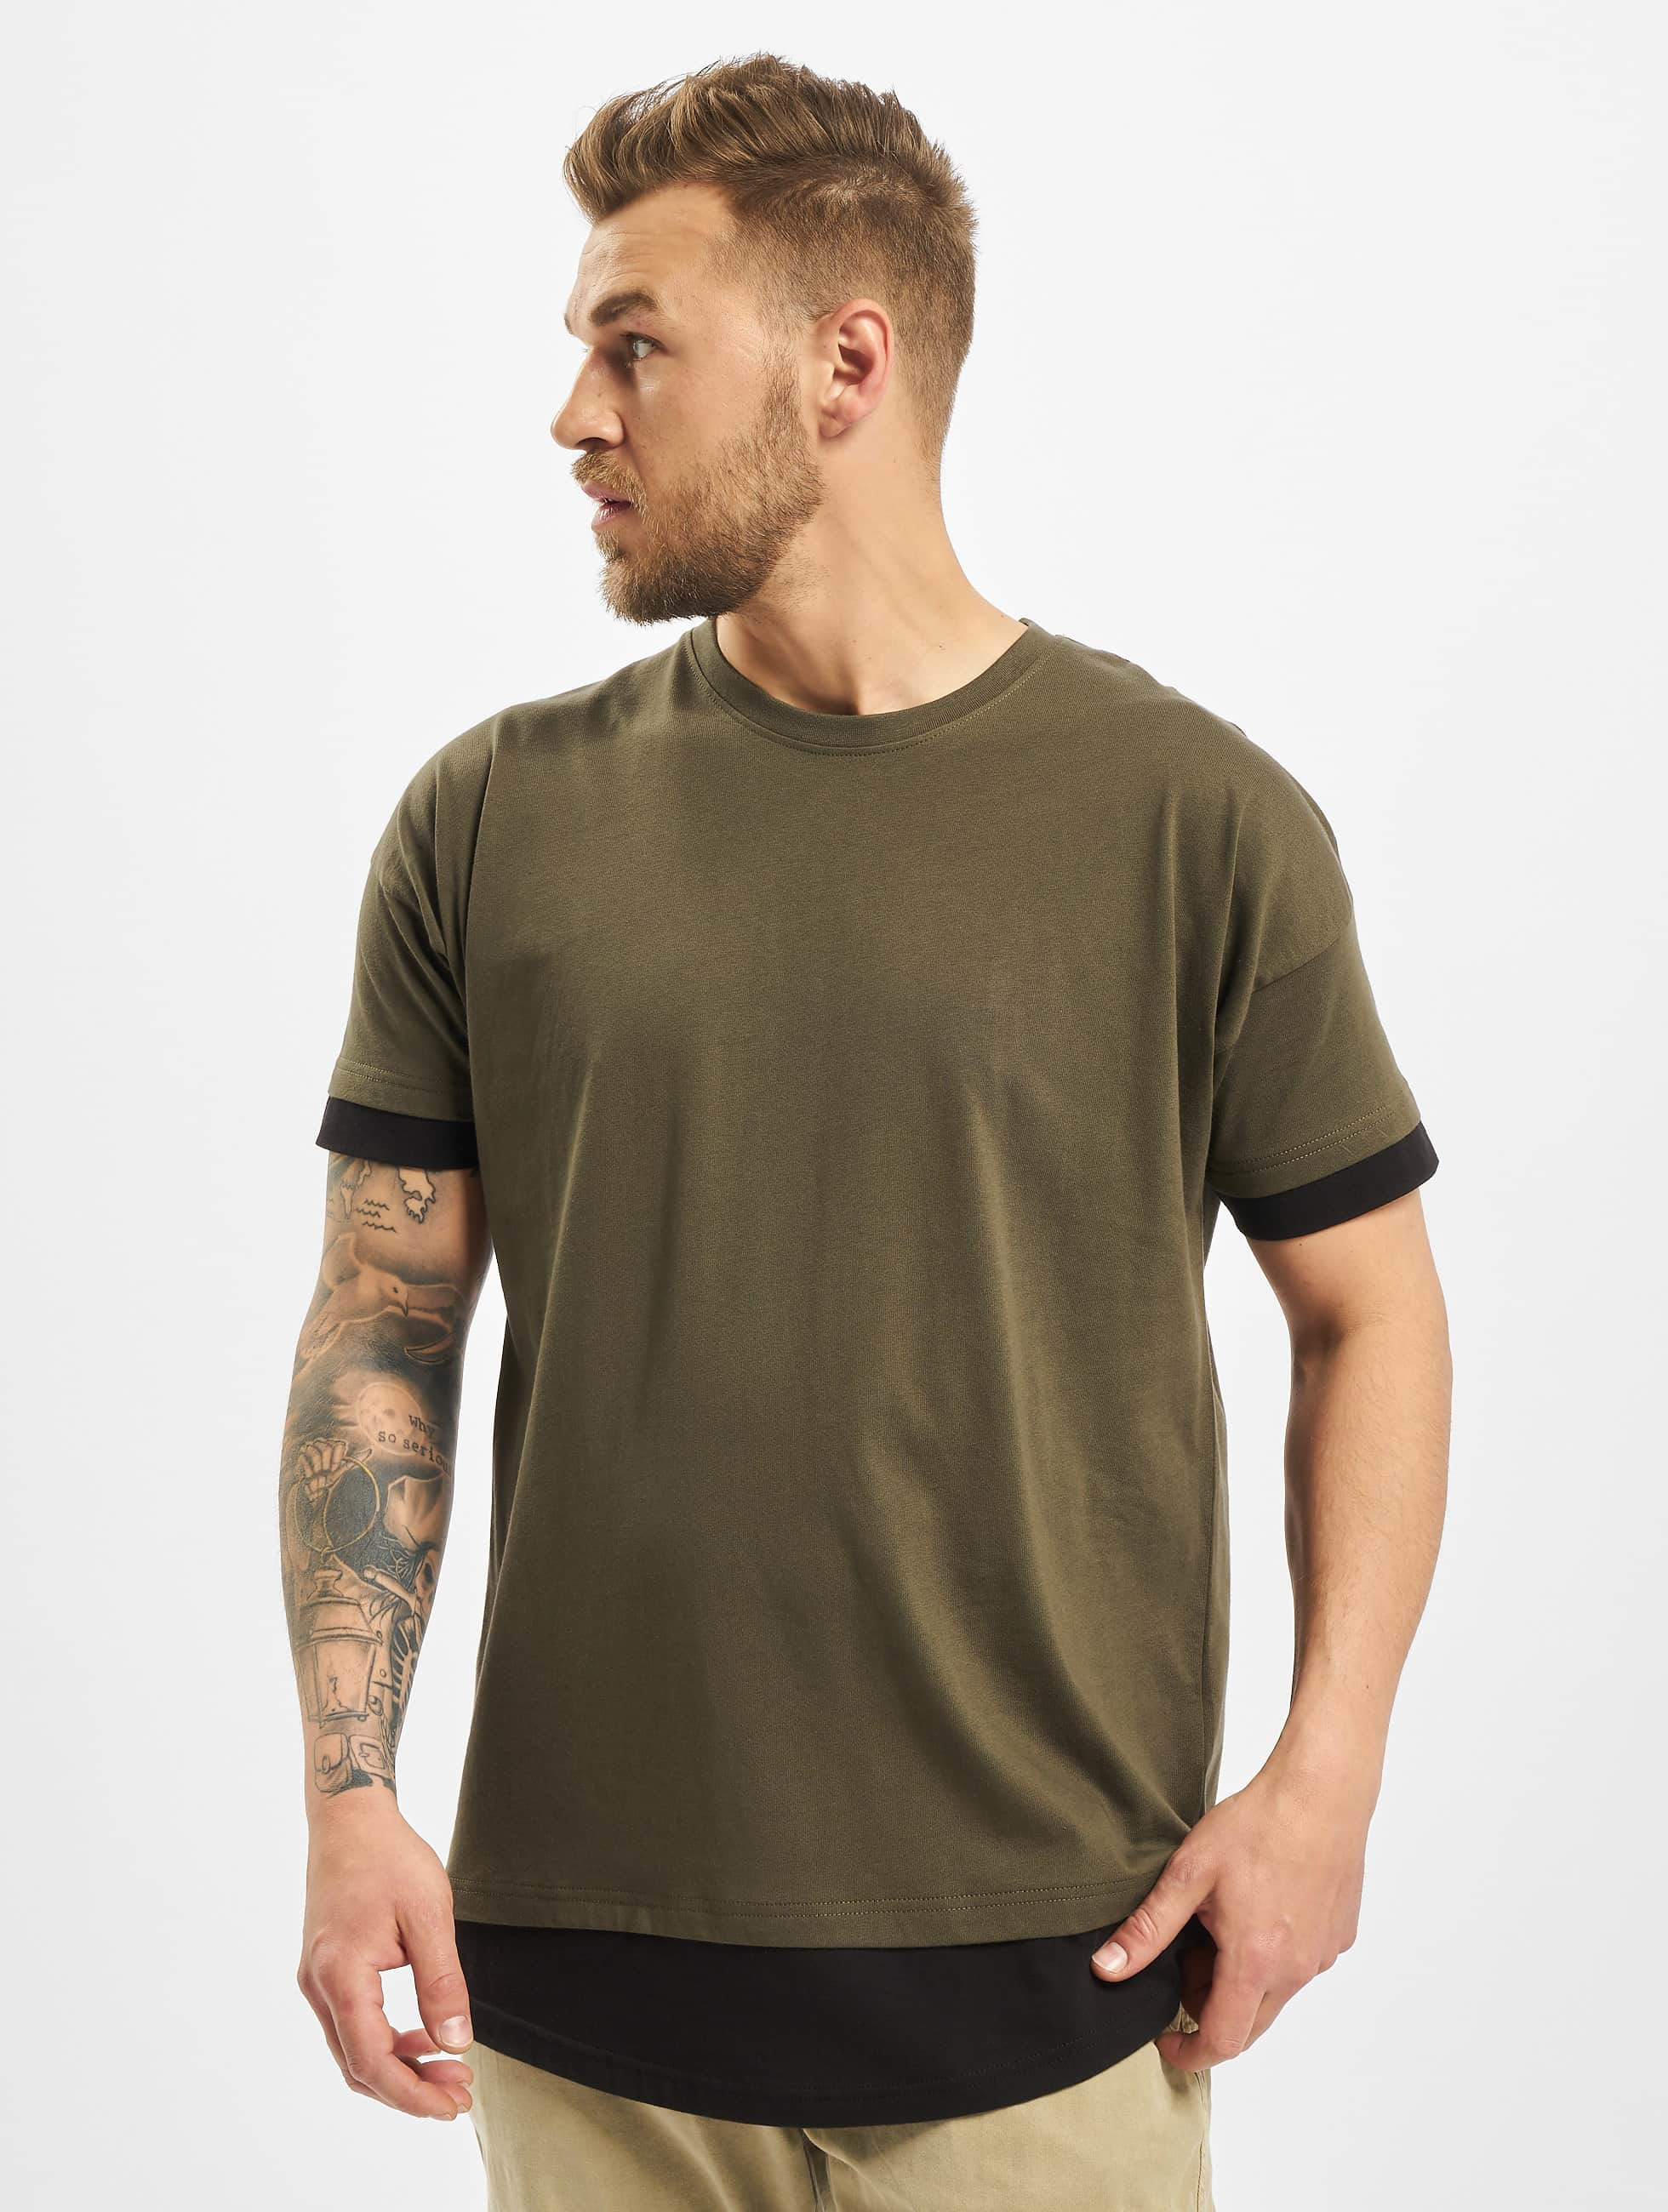 DEF / T-Shirt Tyle in olive 2XL